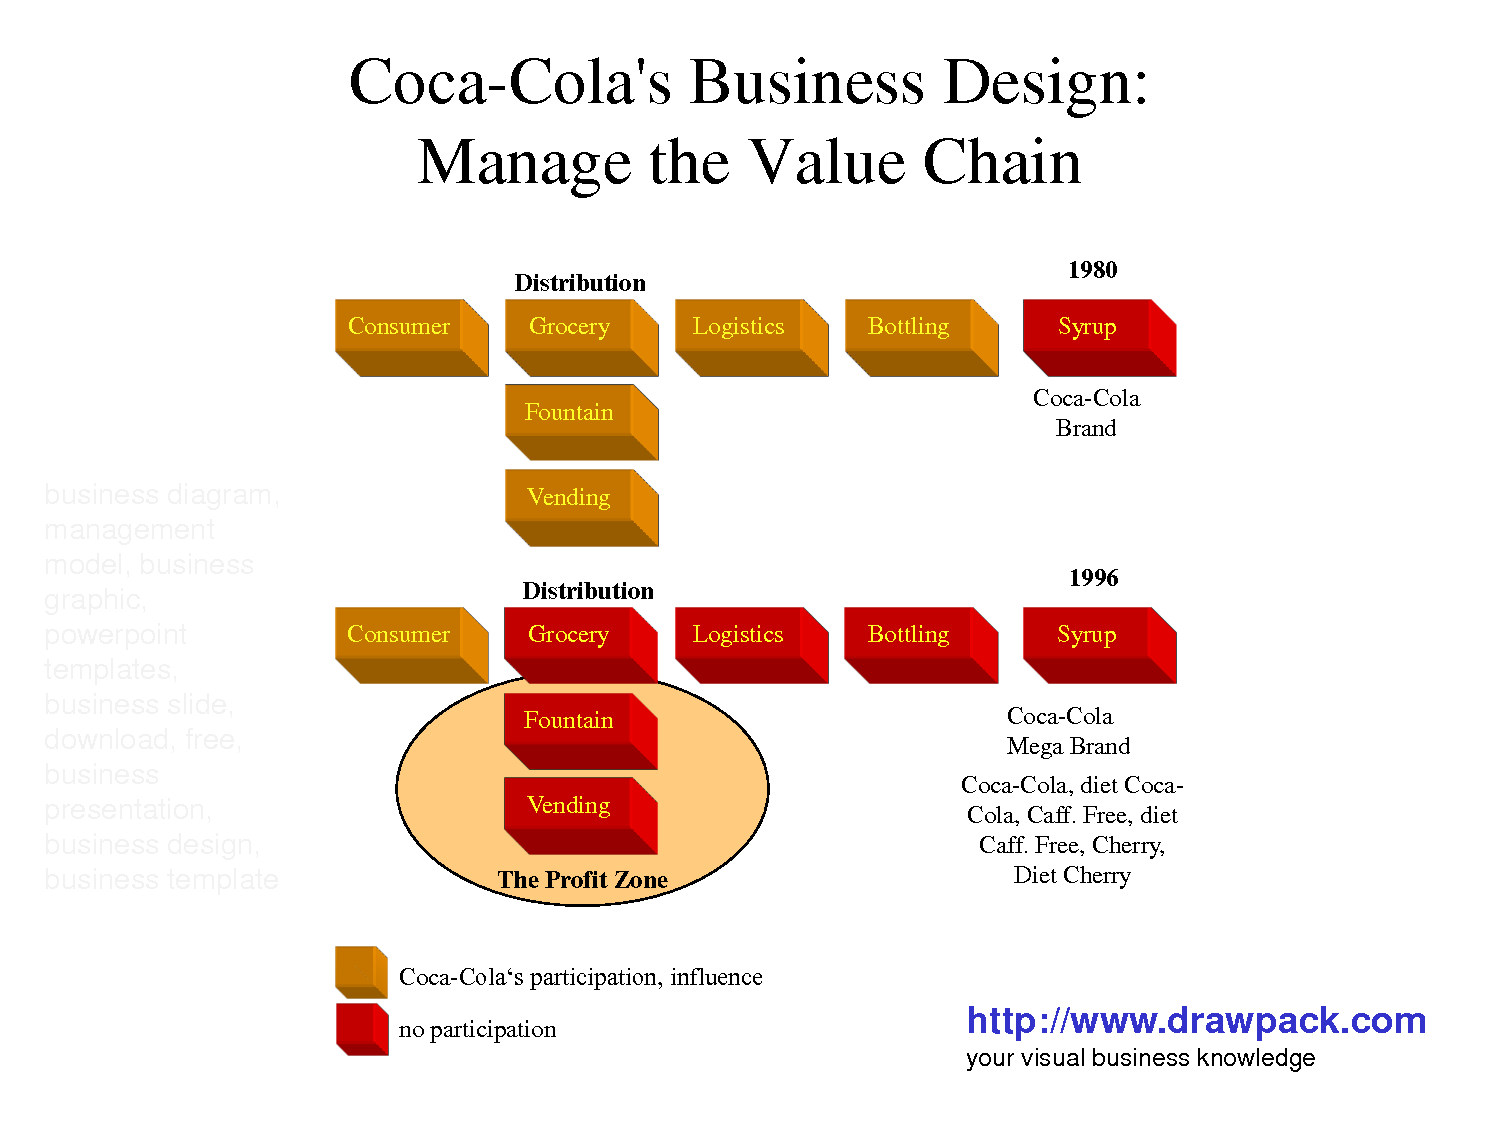 coca cola on facebook case study analysis How coca-cola uses facebook, twitter, pinterest and google+ coca-cola also has facebook pages for its other i am doing a case study on how coca-cola.